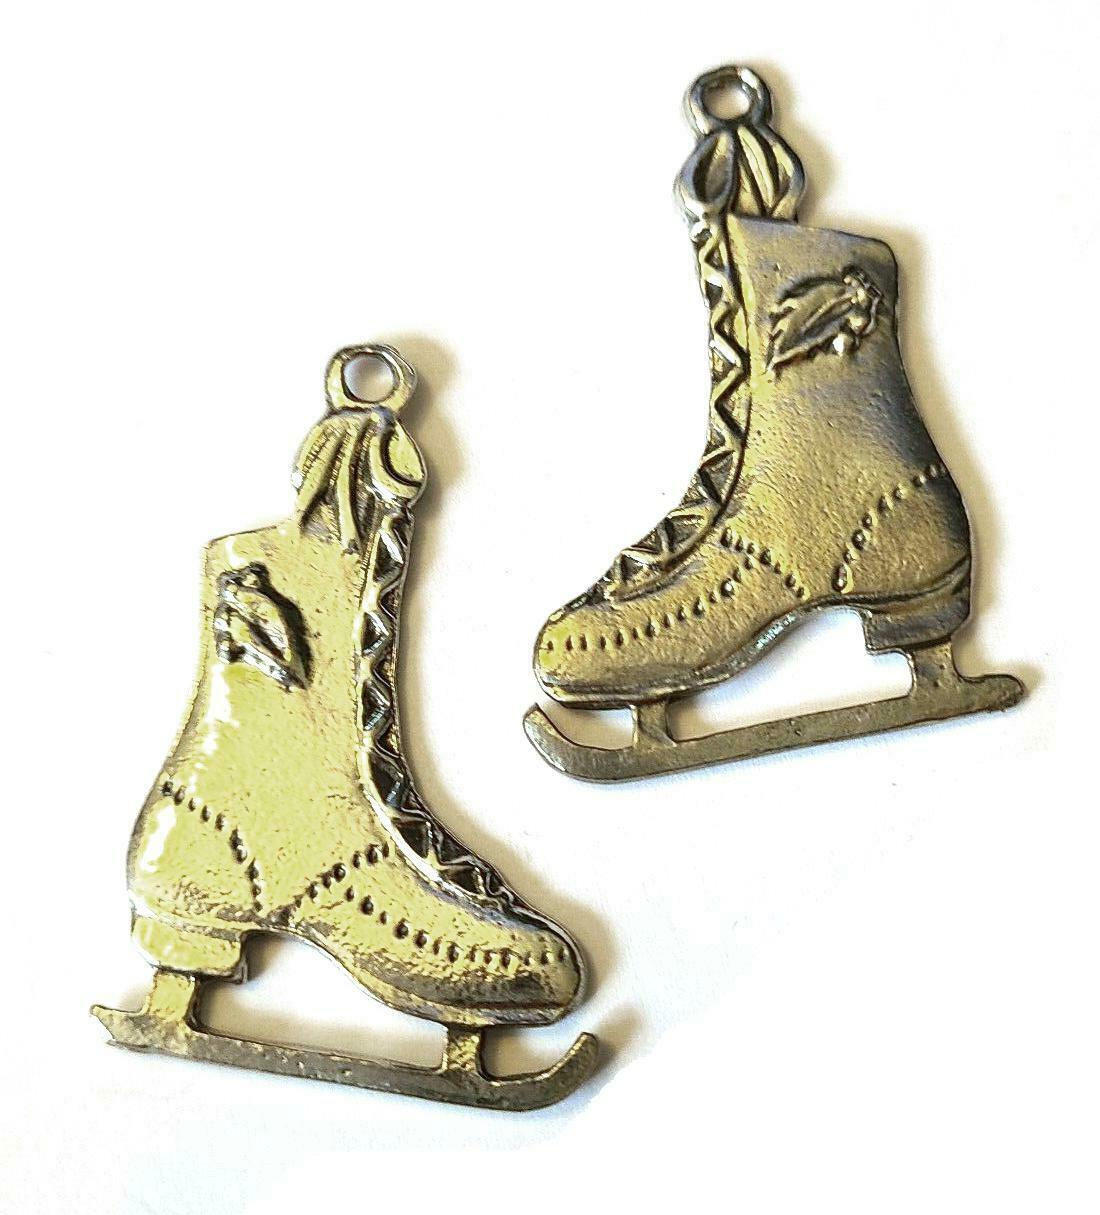 Ice Skate Fine Pewter Ornament - Approx. 1 3/4 Inches Tall (T186)